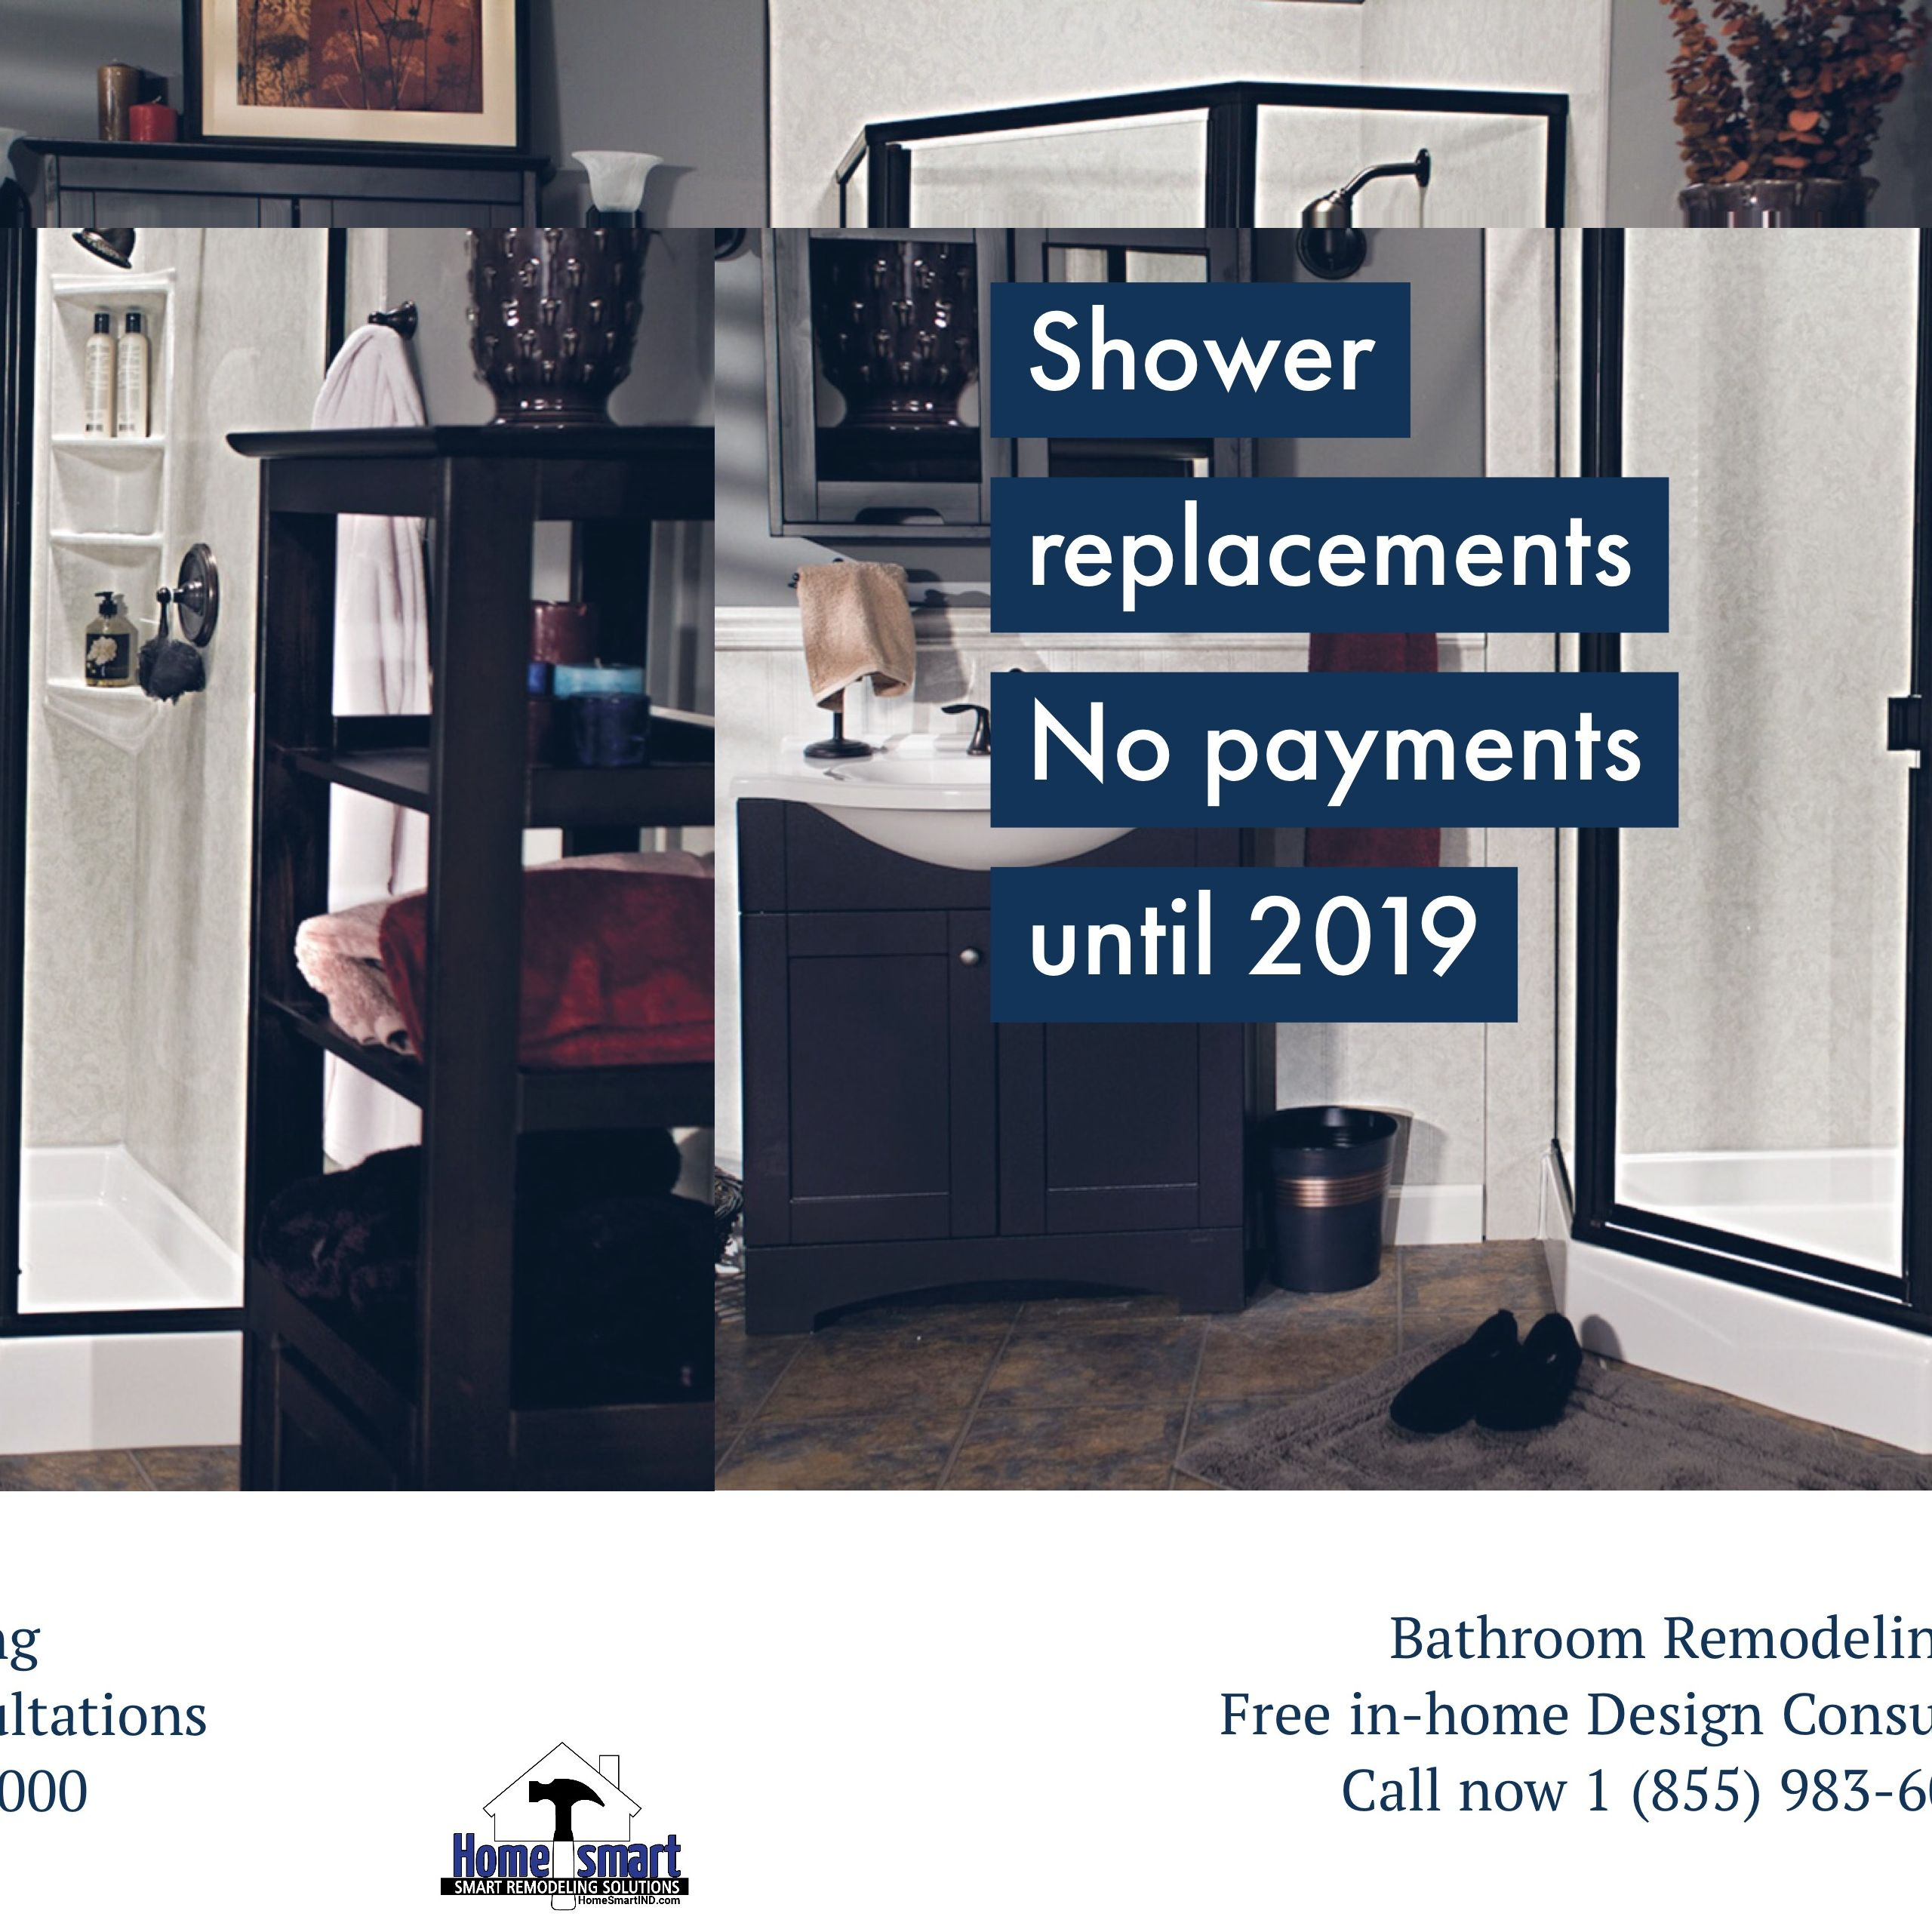 Professional bathroom remodeling and no payments until 2019. Low ...